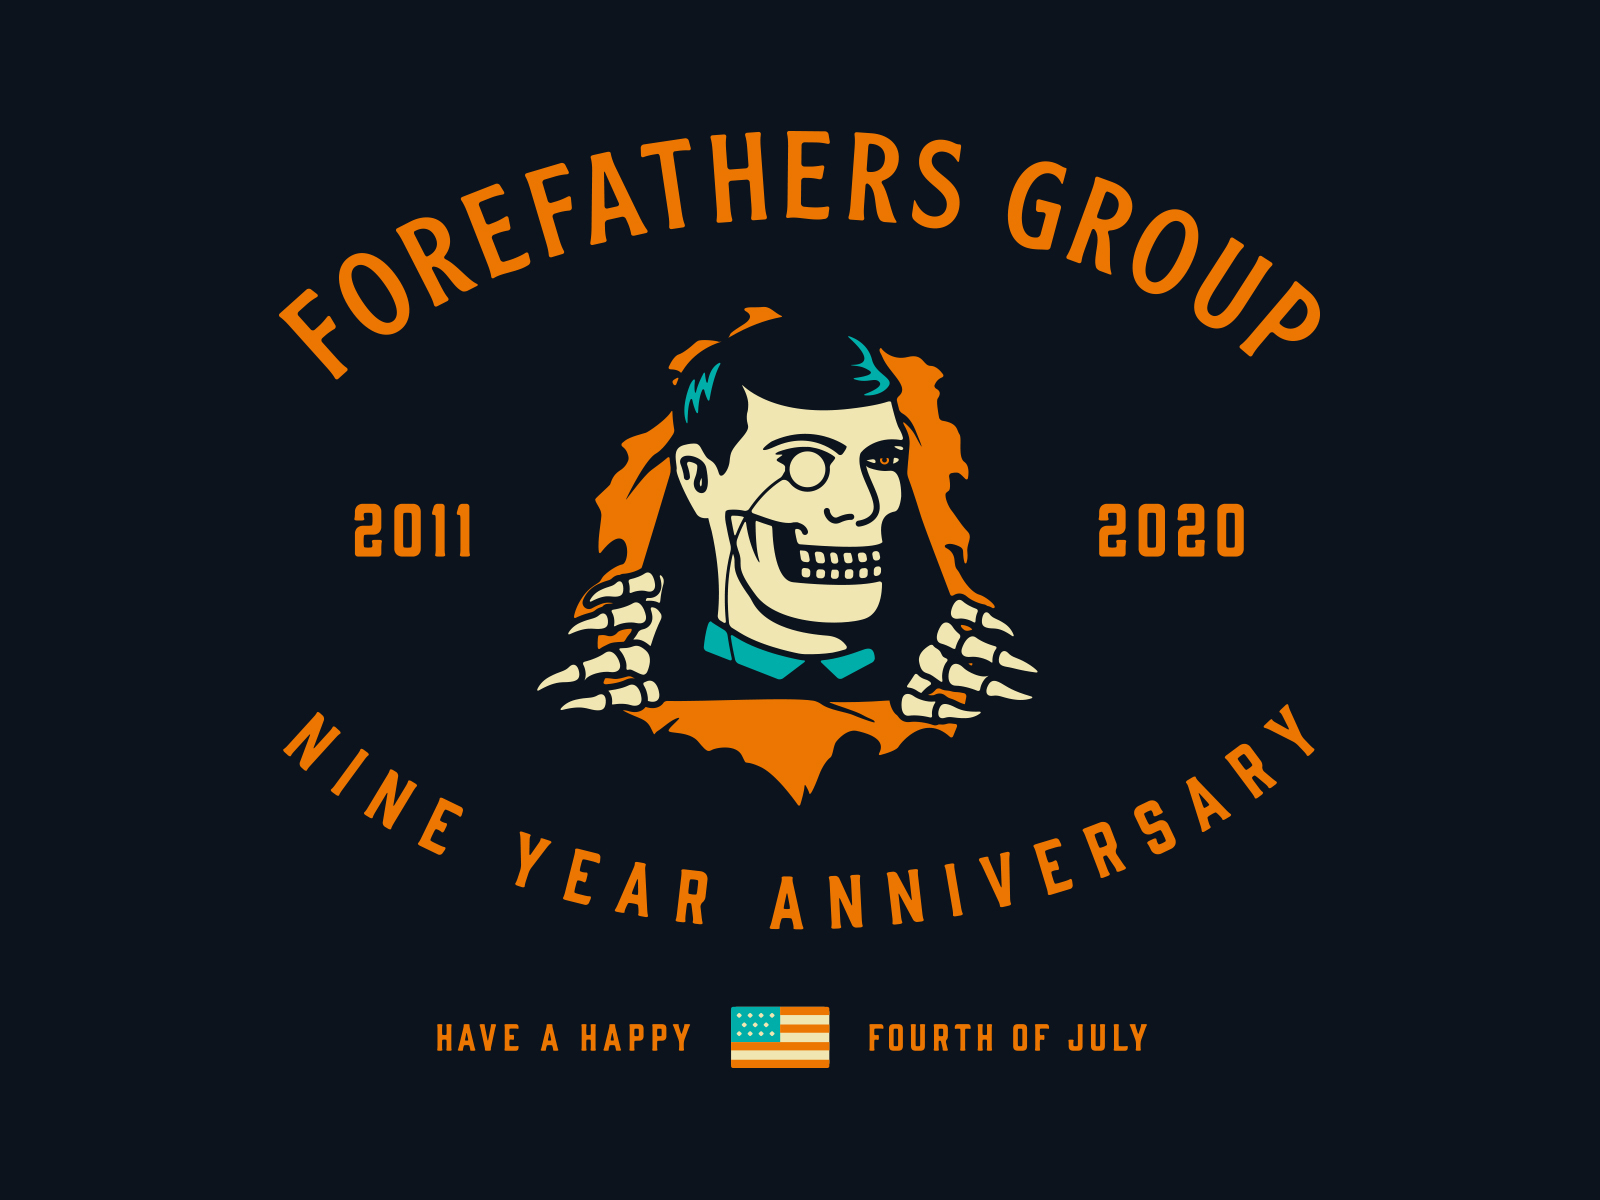 Forefathers 9 Year Anniversary By The Forefathers Group On Dribbble